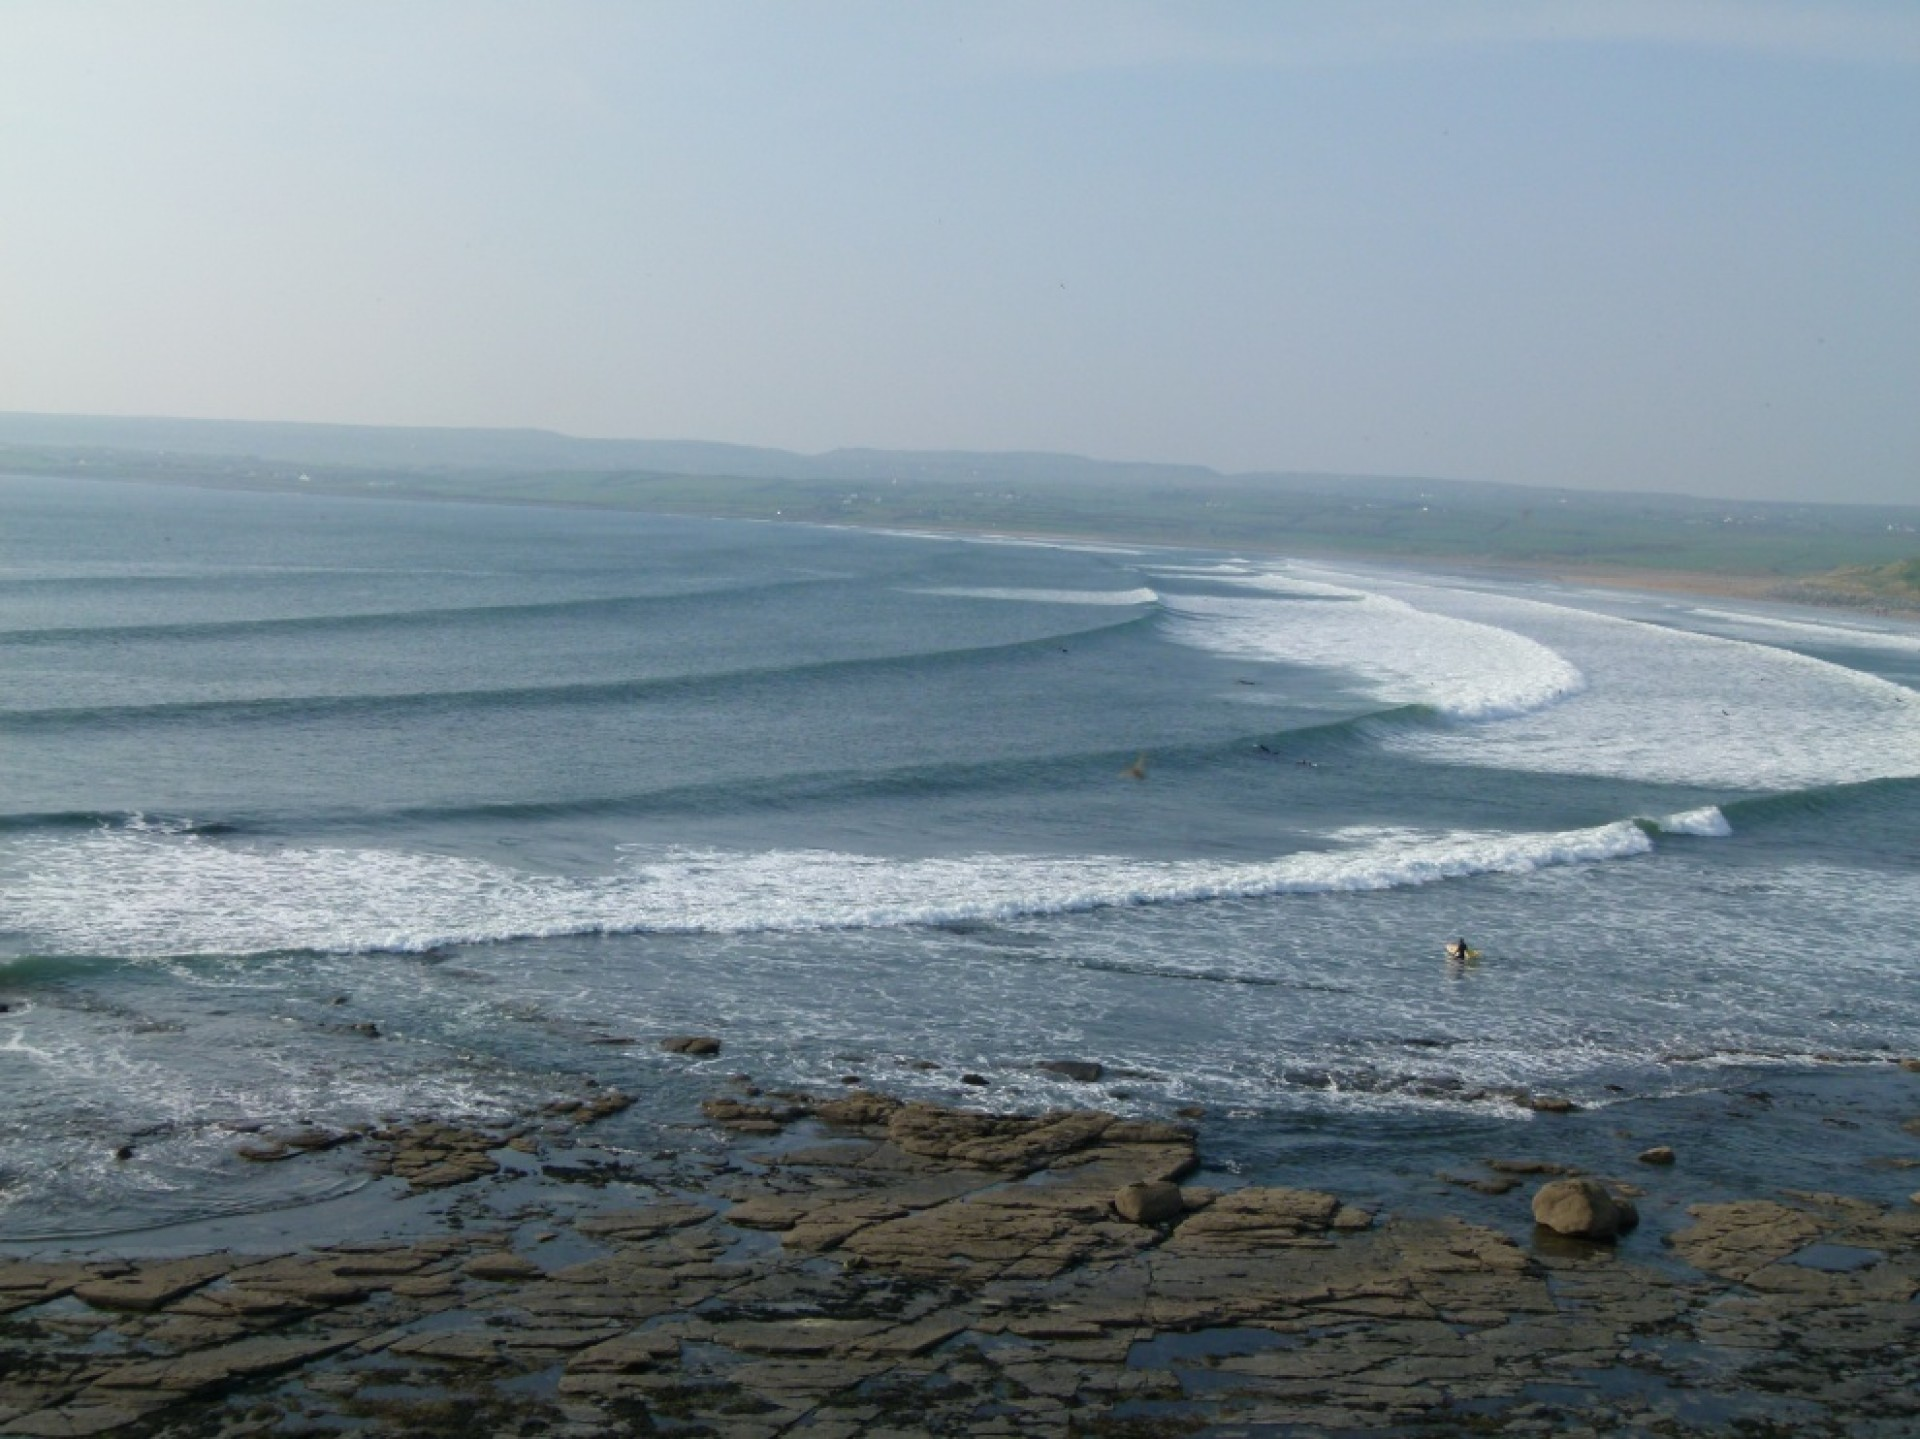 zipbuzz's photo of Lahinch - Beach